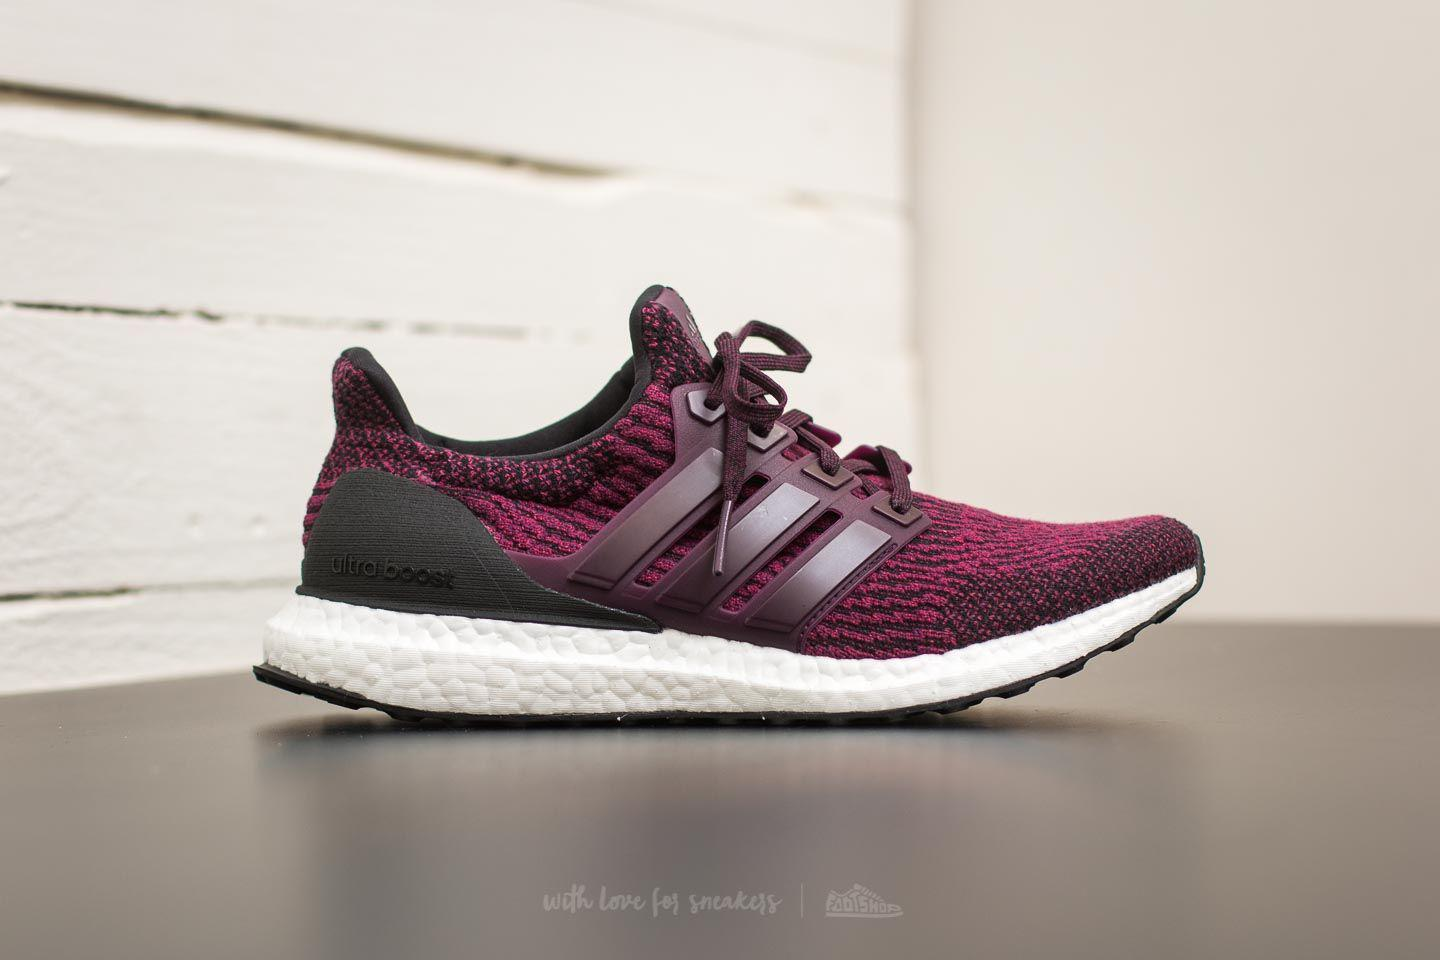 29.100 lyst footshop adidas ultraboost w rosso sera / notte / nucleo di colore rosso